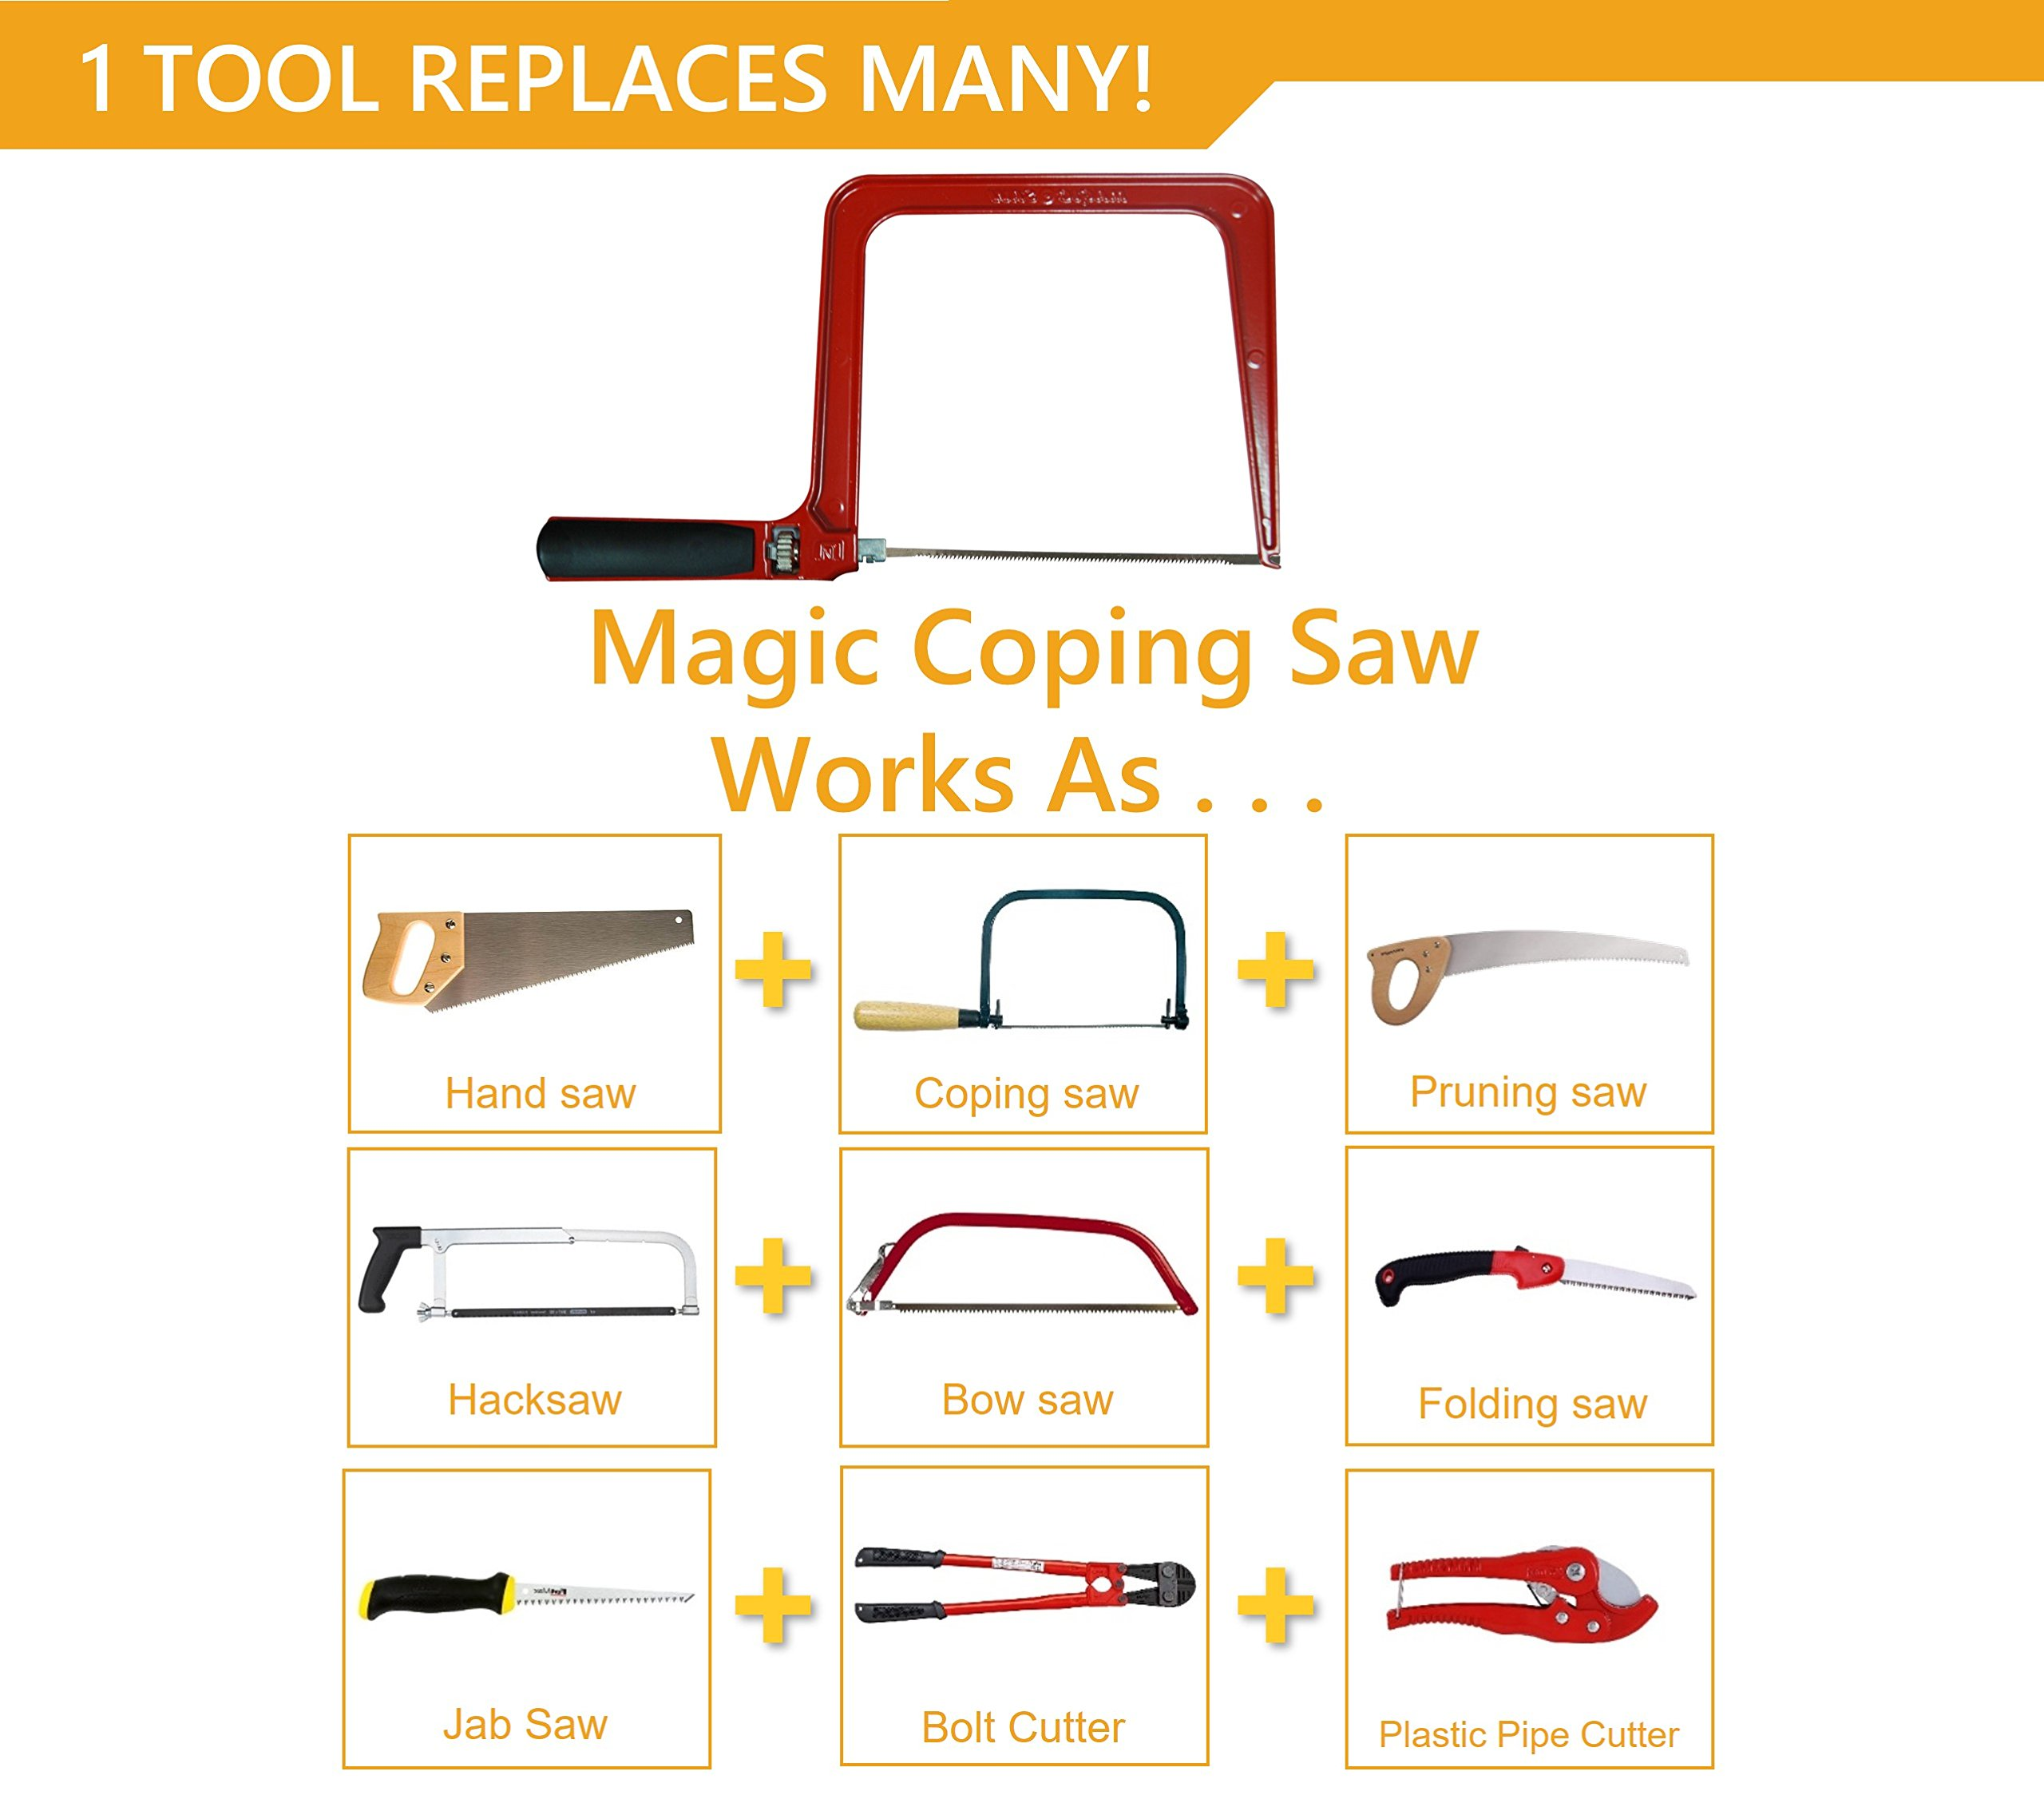 Original Magic Coping Saw with 6 inch High Carbon Steel Pins Blades, a Heavy Duty H shape Metal Frame Works as Fret Saw, Hacksaw, and Pruning Saw & Suitable to Cut Wood, Plastic, PVC, Aluminum, Nails by Amazing Tools (Image #4)